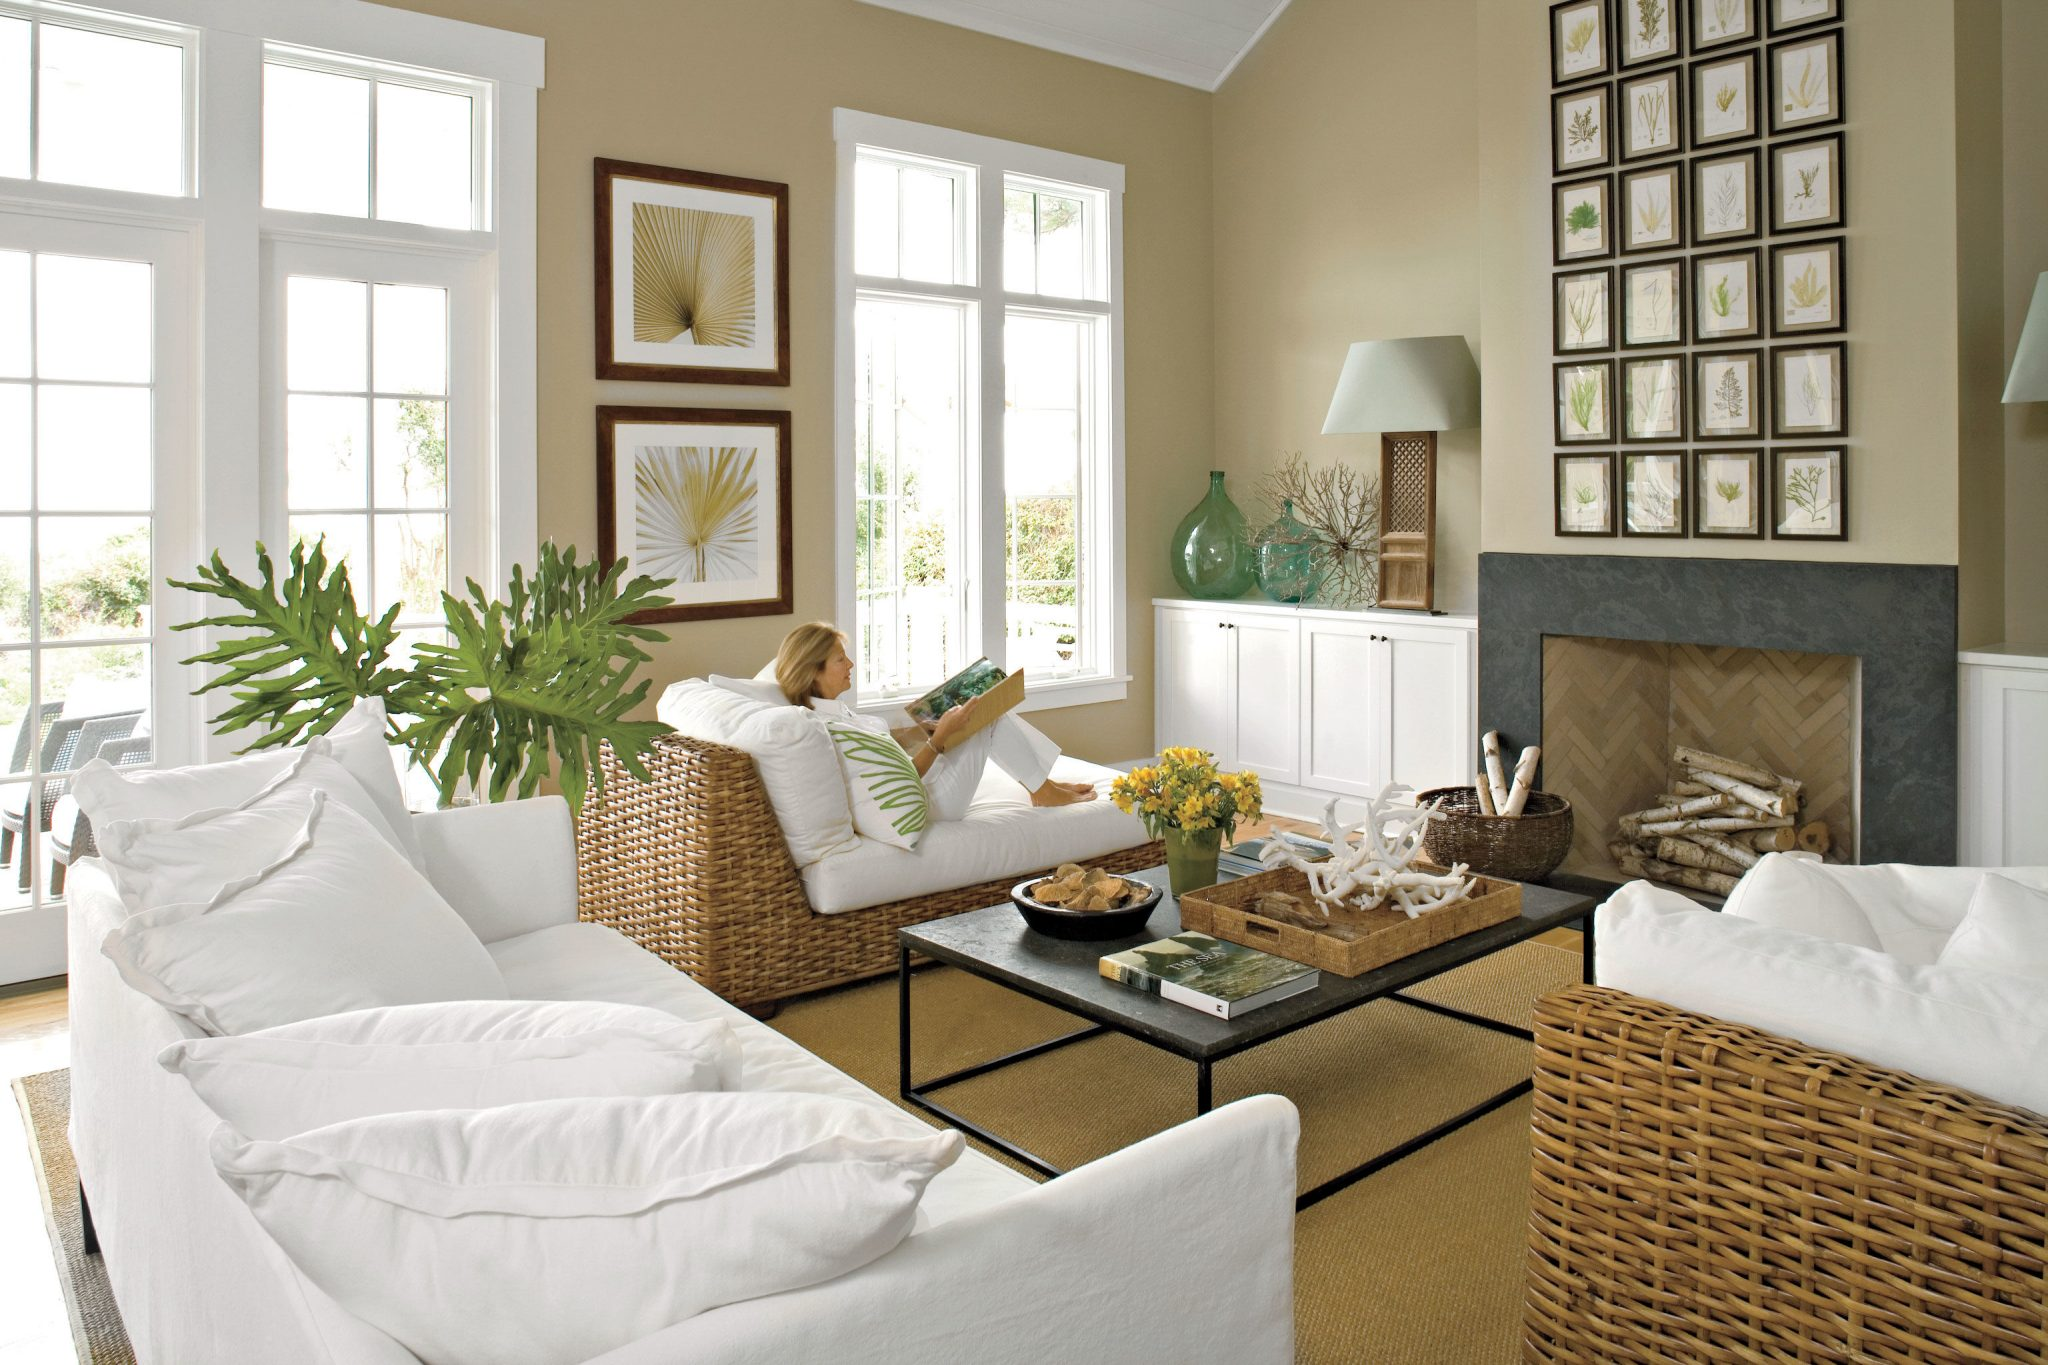 Fireplace without a cover in the beach sanctuary